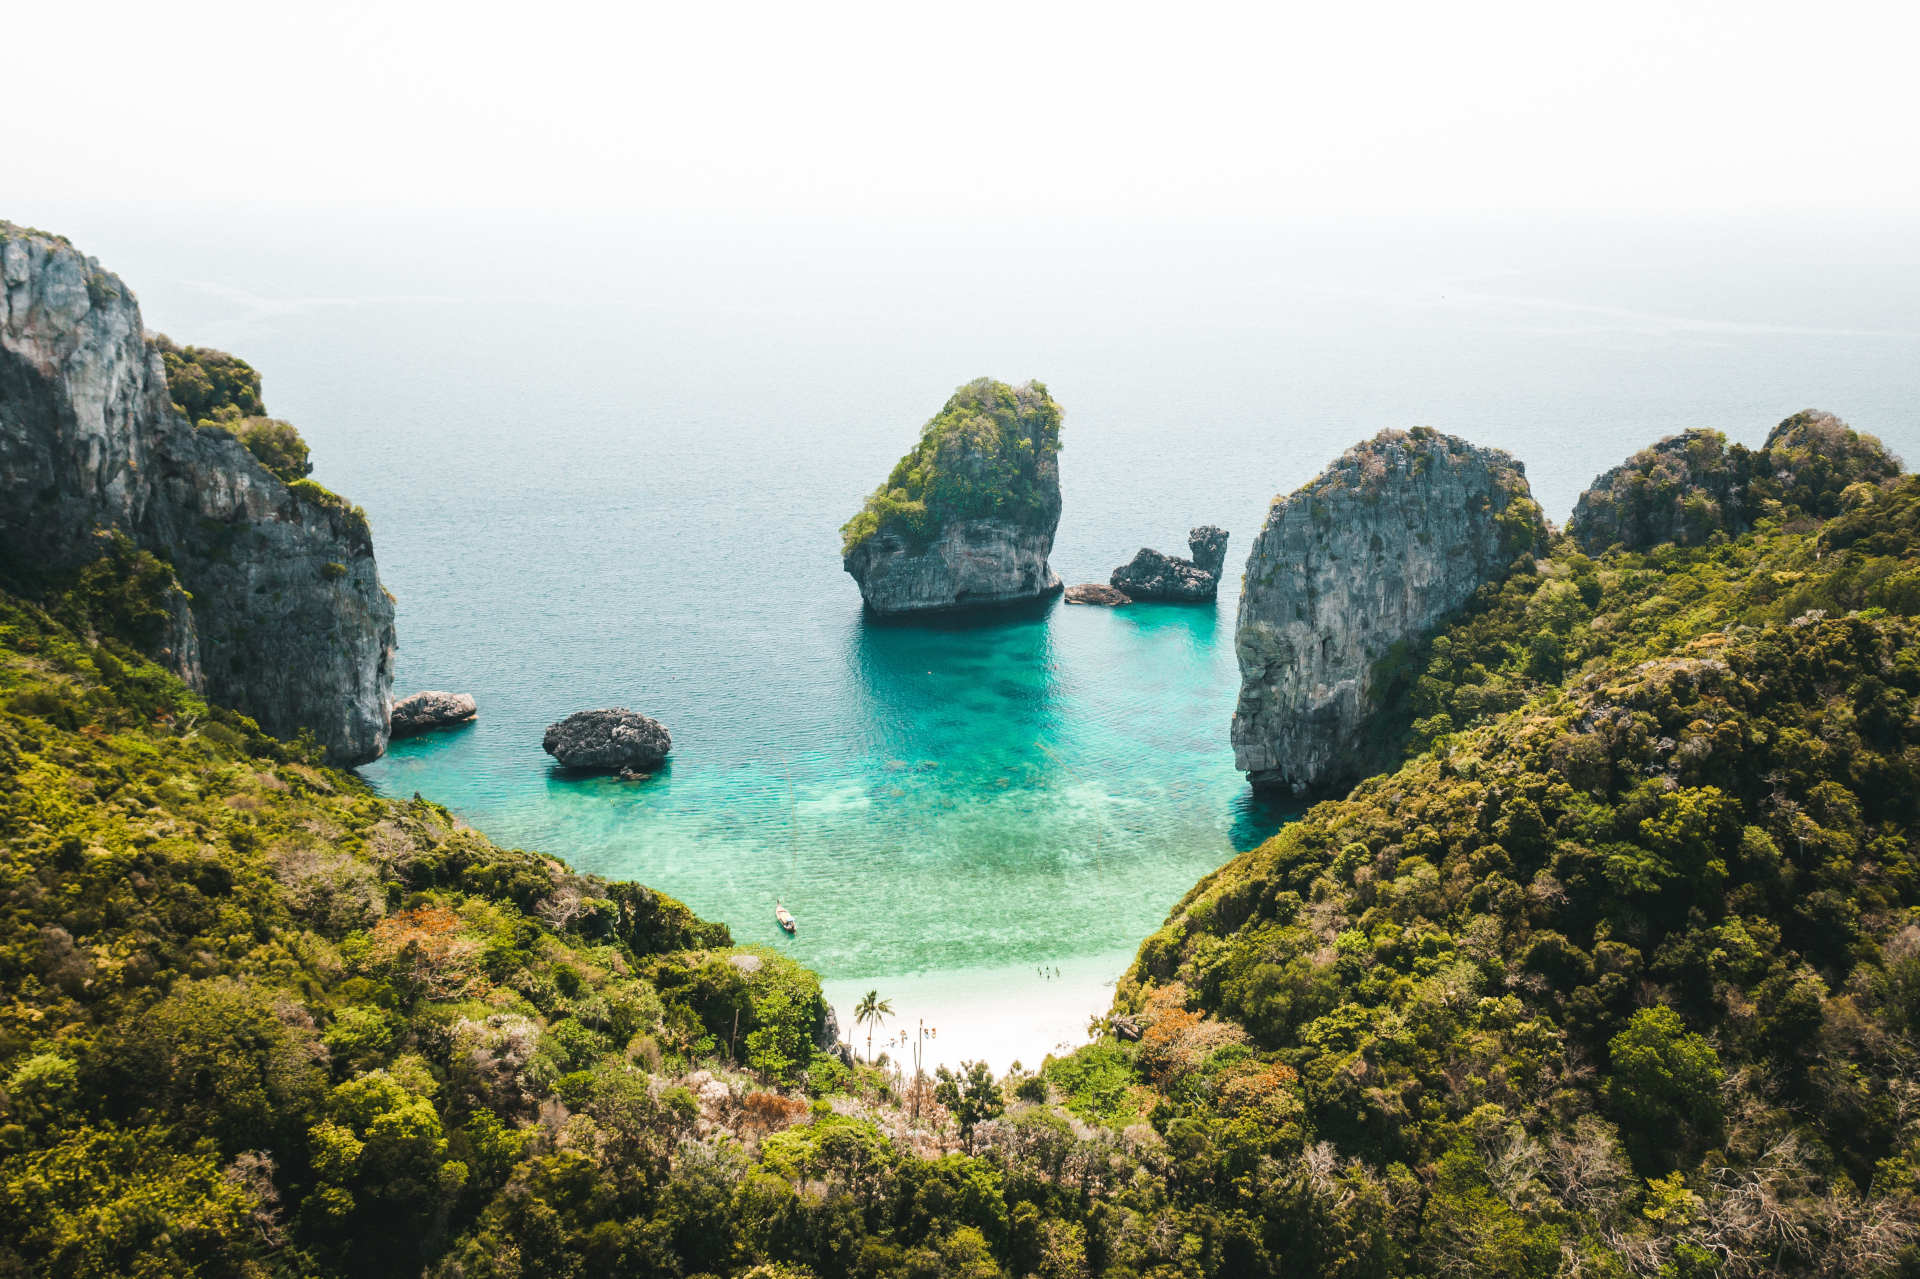 Custom-Travel-Planner-Network-Thailand-Phi-Phi-Islands-Krabi